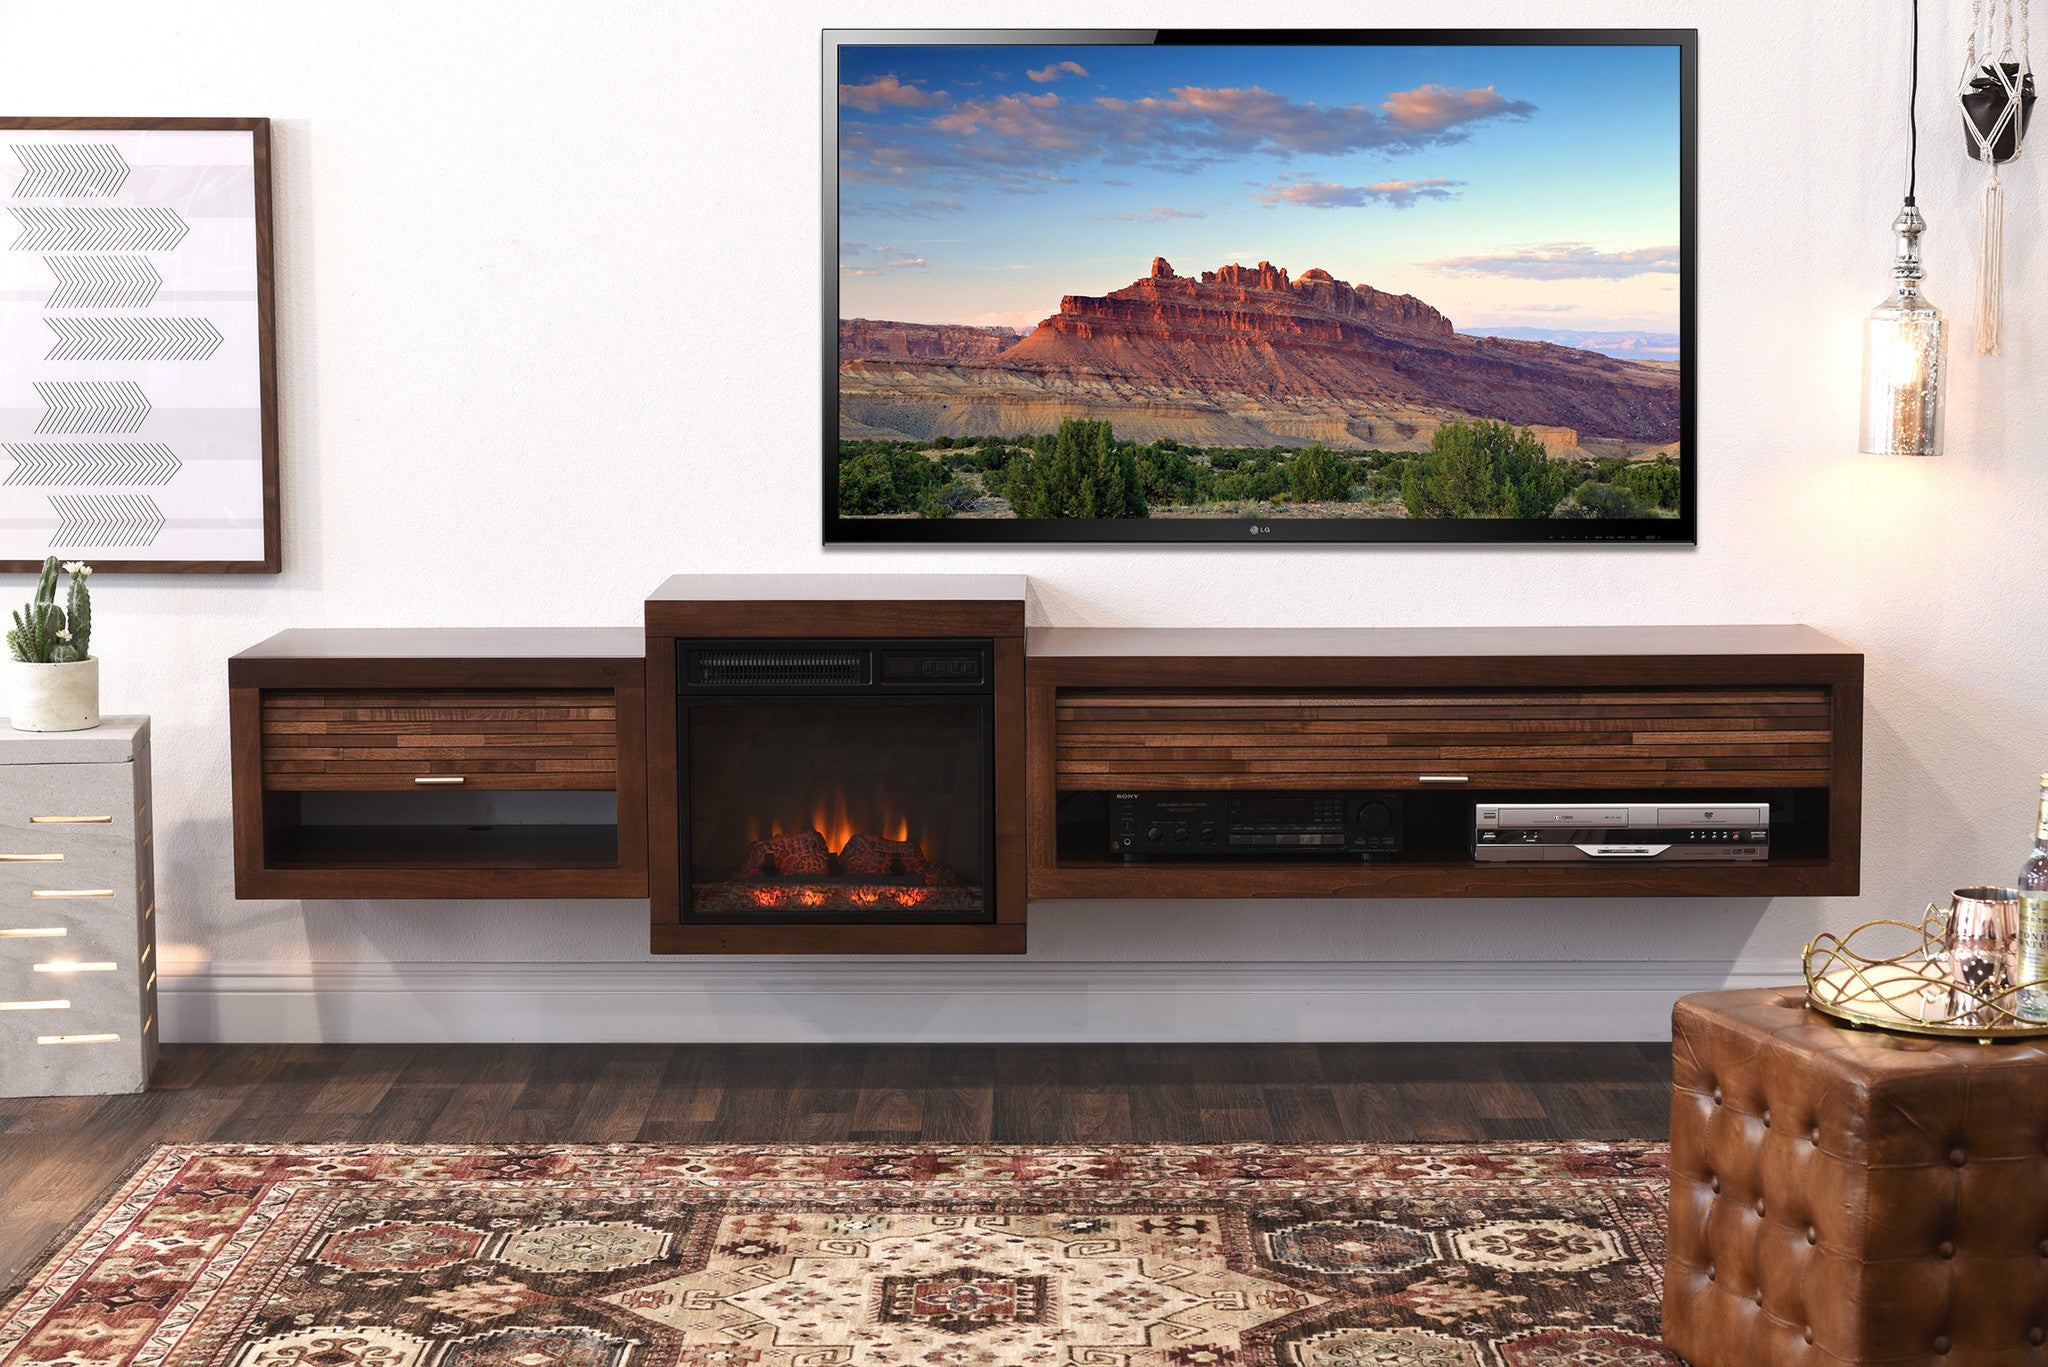 Save $$ With This Bundle! Floating TV Stand With Electric Fireplace The Eco Geo is a unique eco-friendly modular entertainment console which is handcrafted of solid Poplar and genuine Maple veneers.   This bundle includes our electric fireplace and heating unit! The fireplace unit features a built in heater to creat